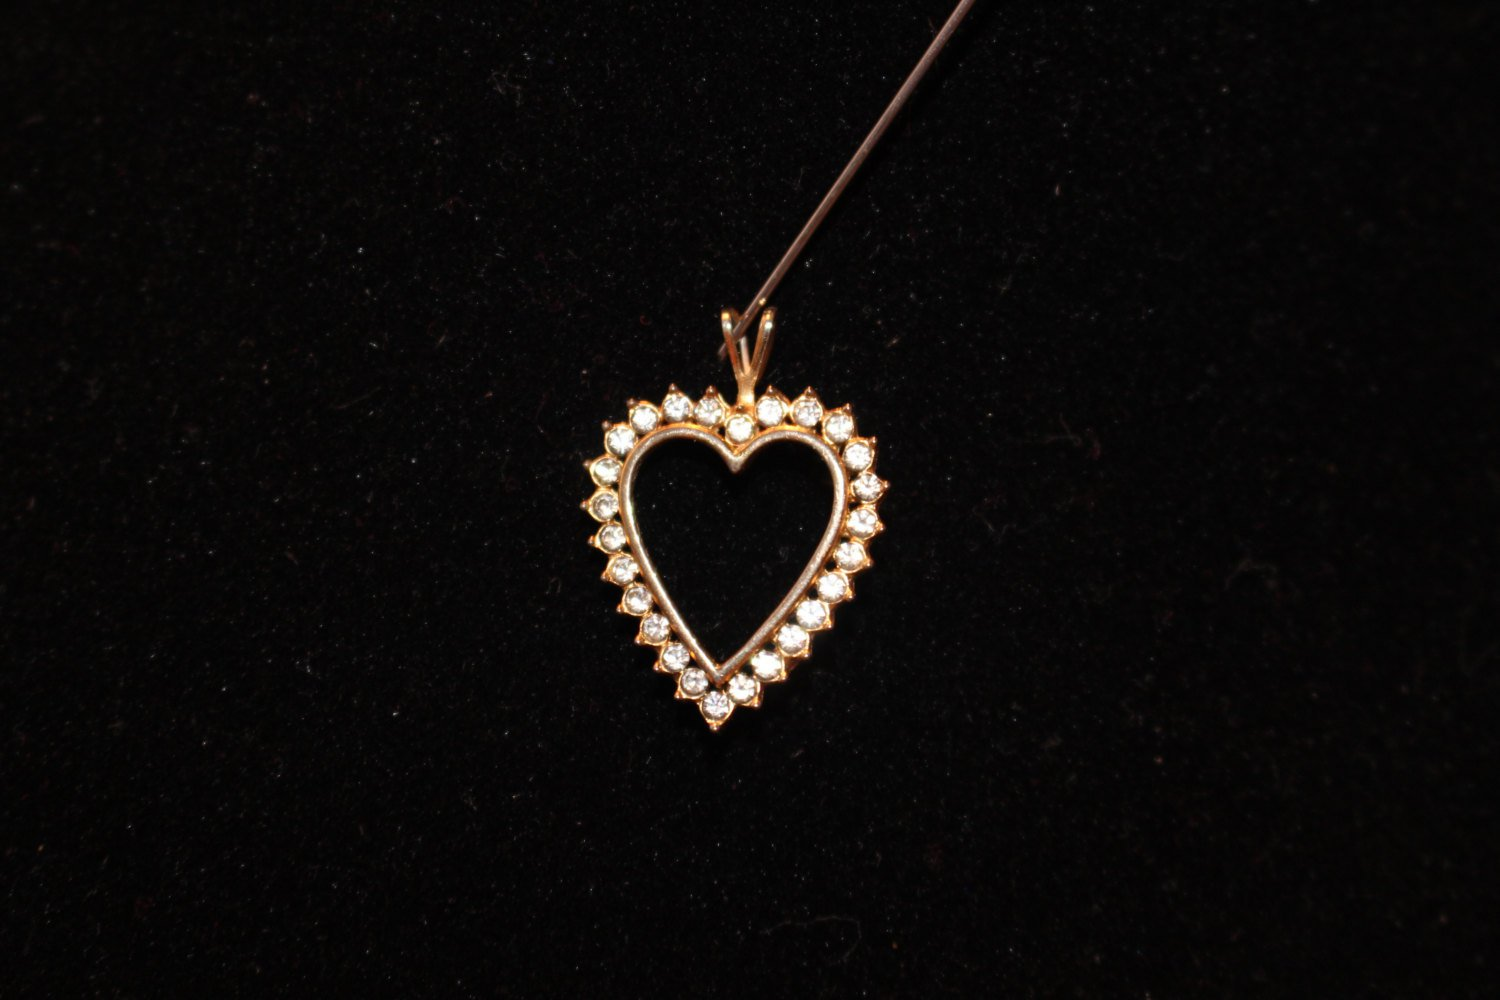 Vintage Rhinestone Heart Pendant for Necklace